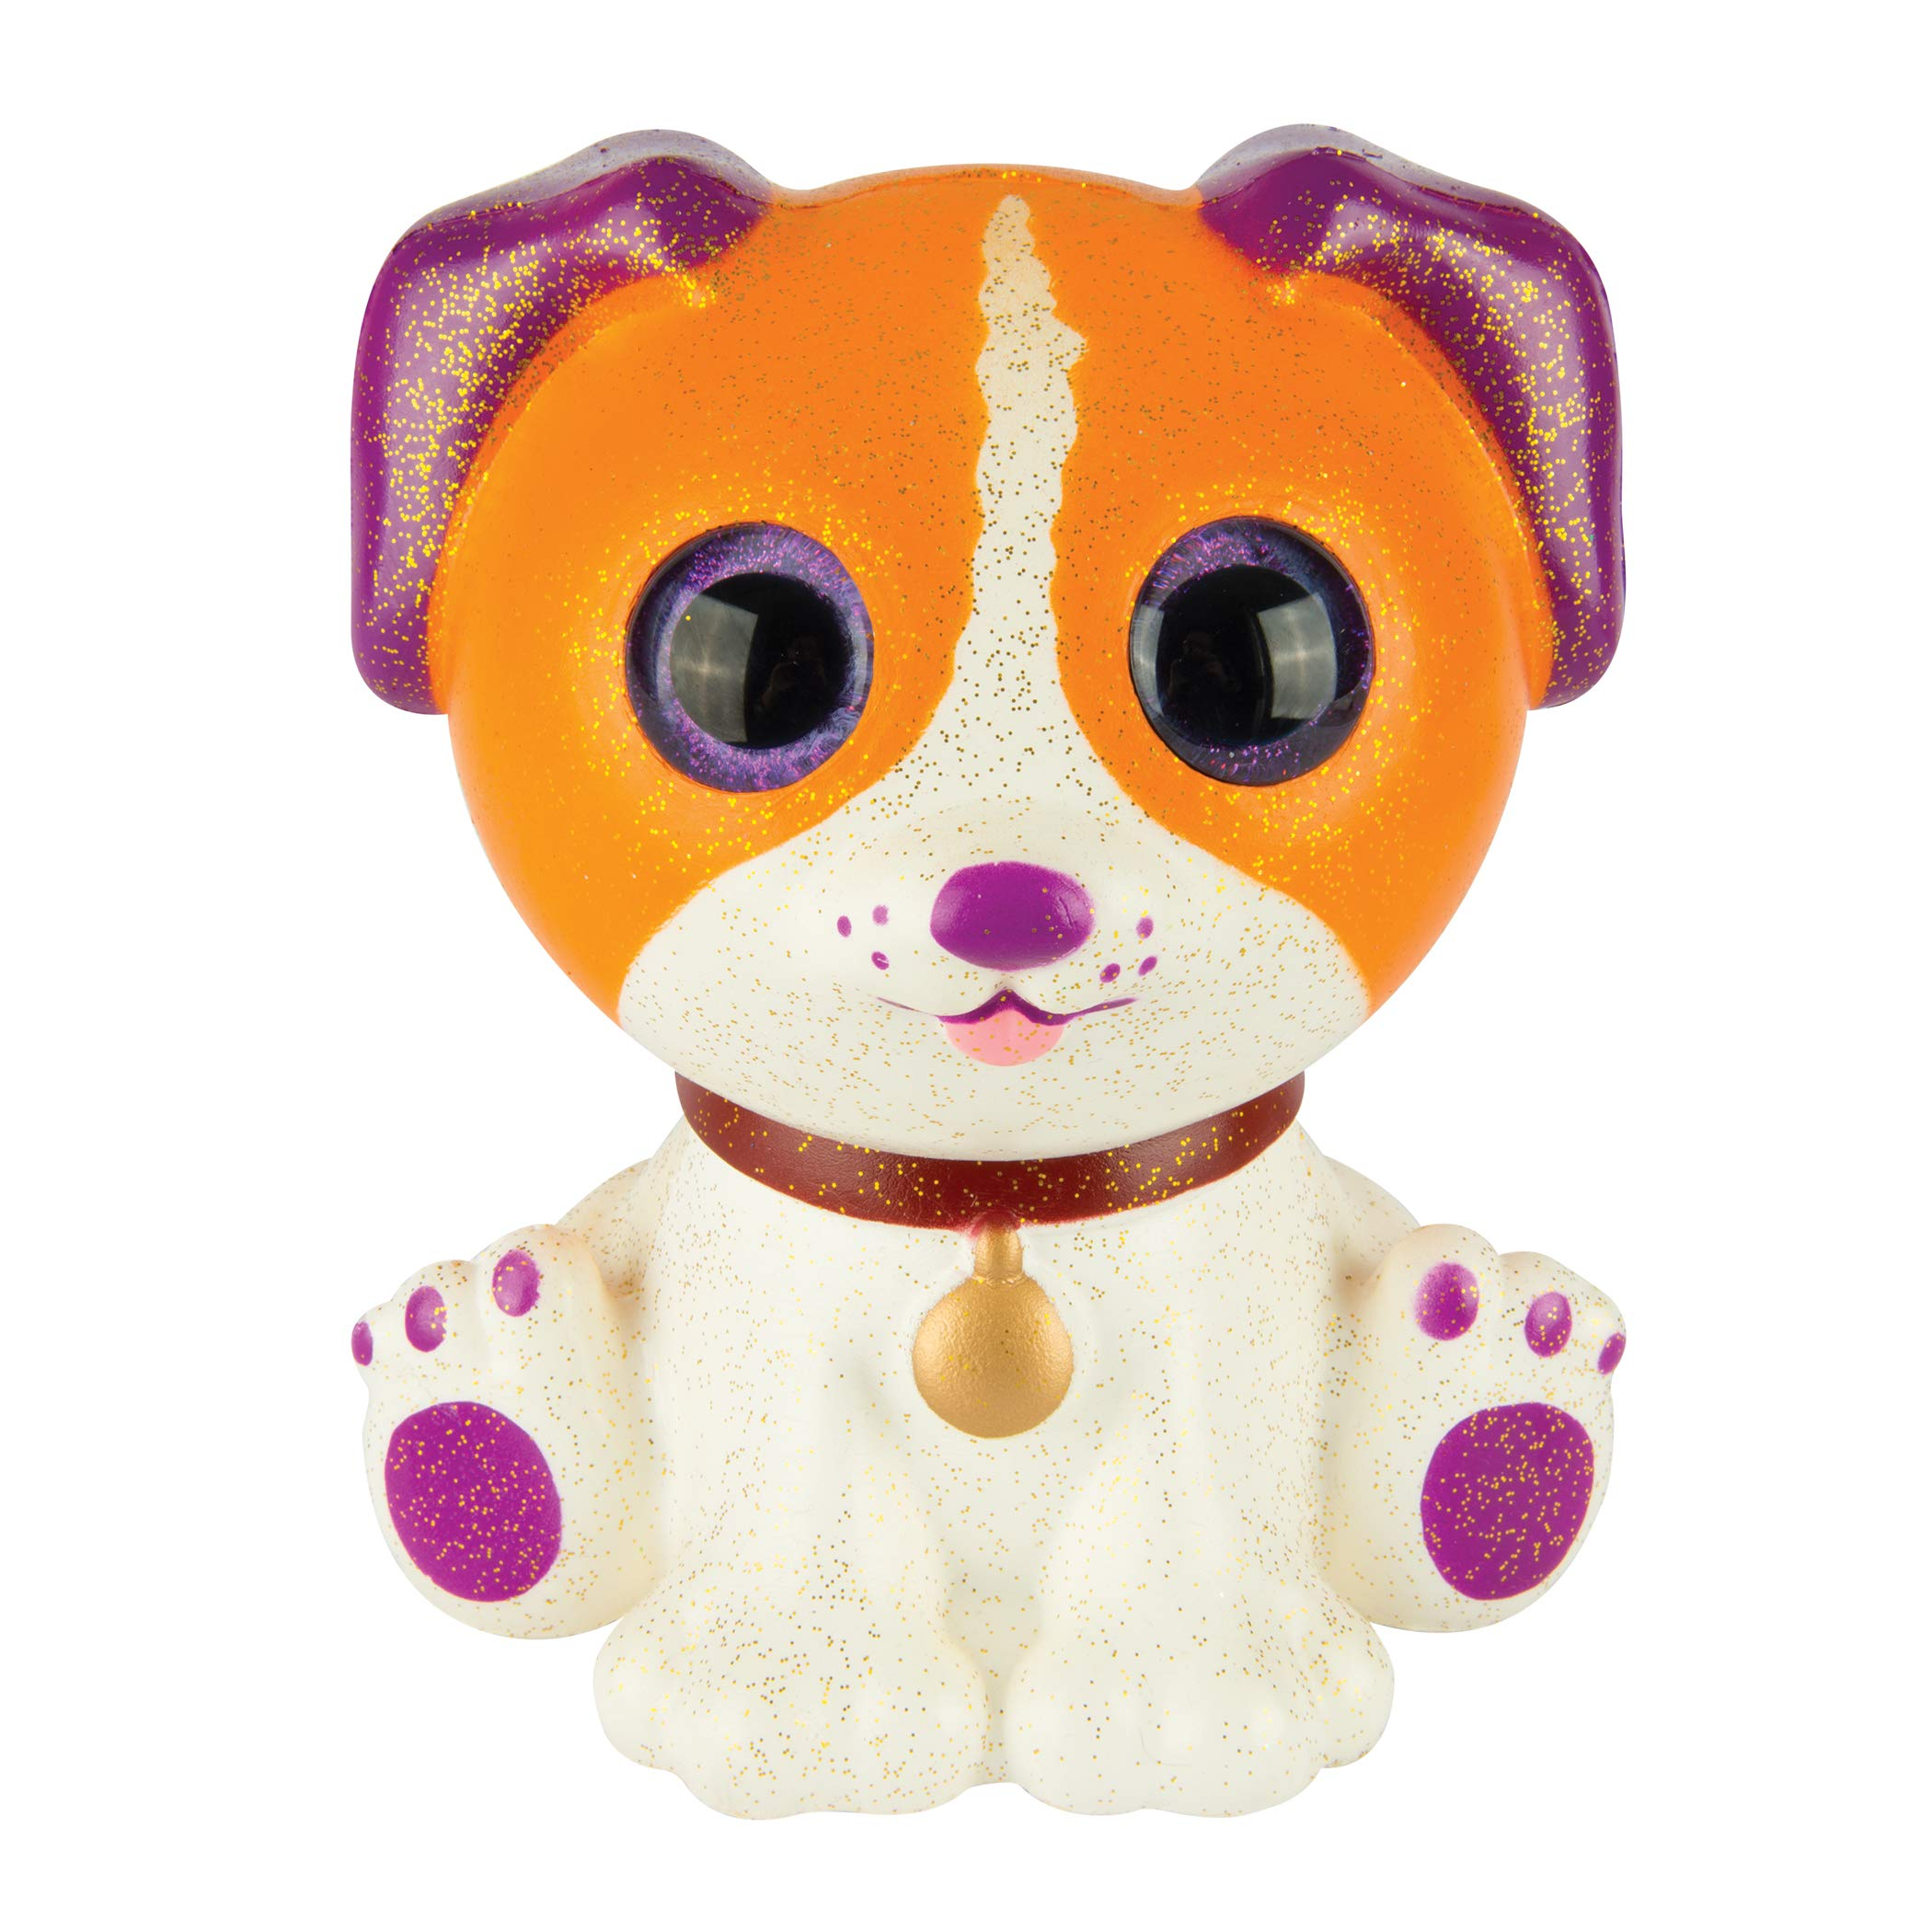 Grin Studios Amazing Squishee Friends XL Dog by Grin Studios